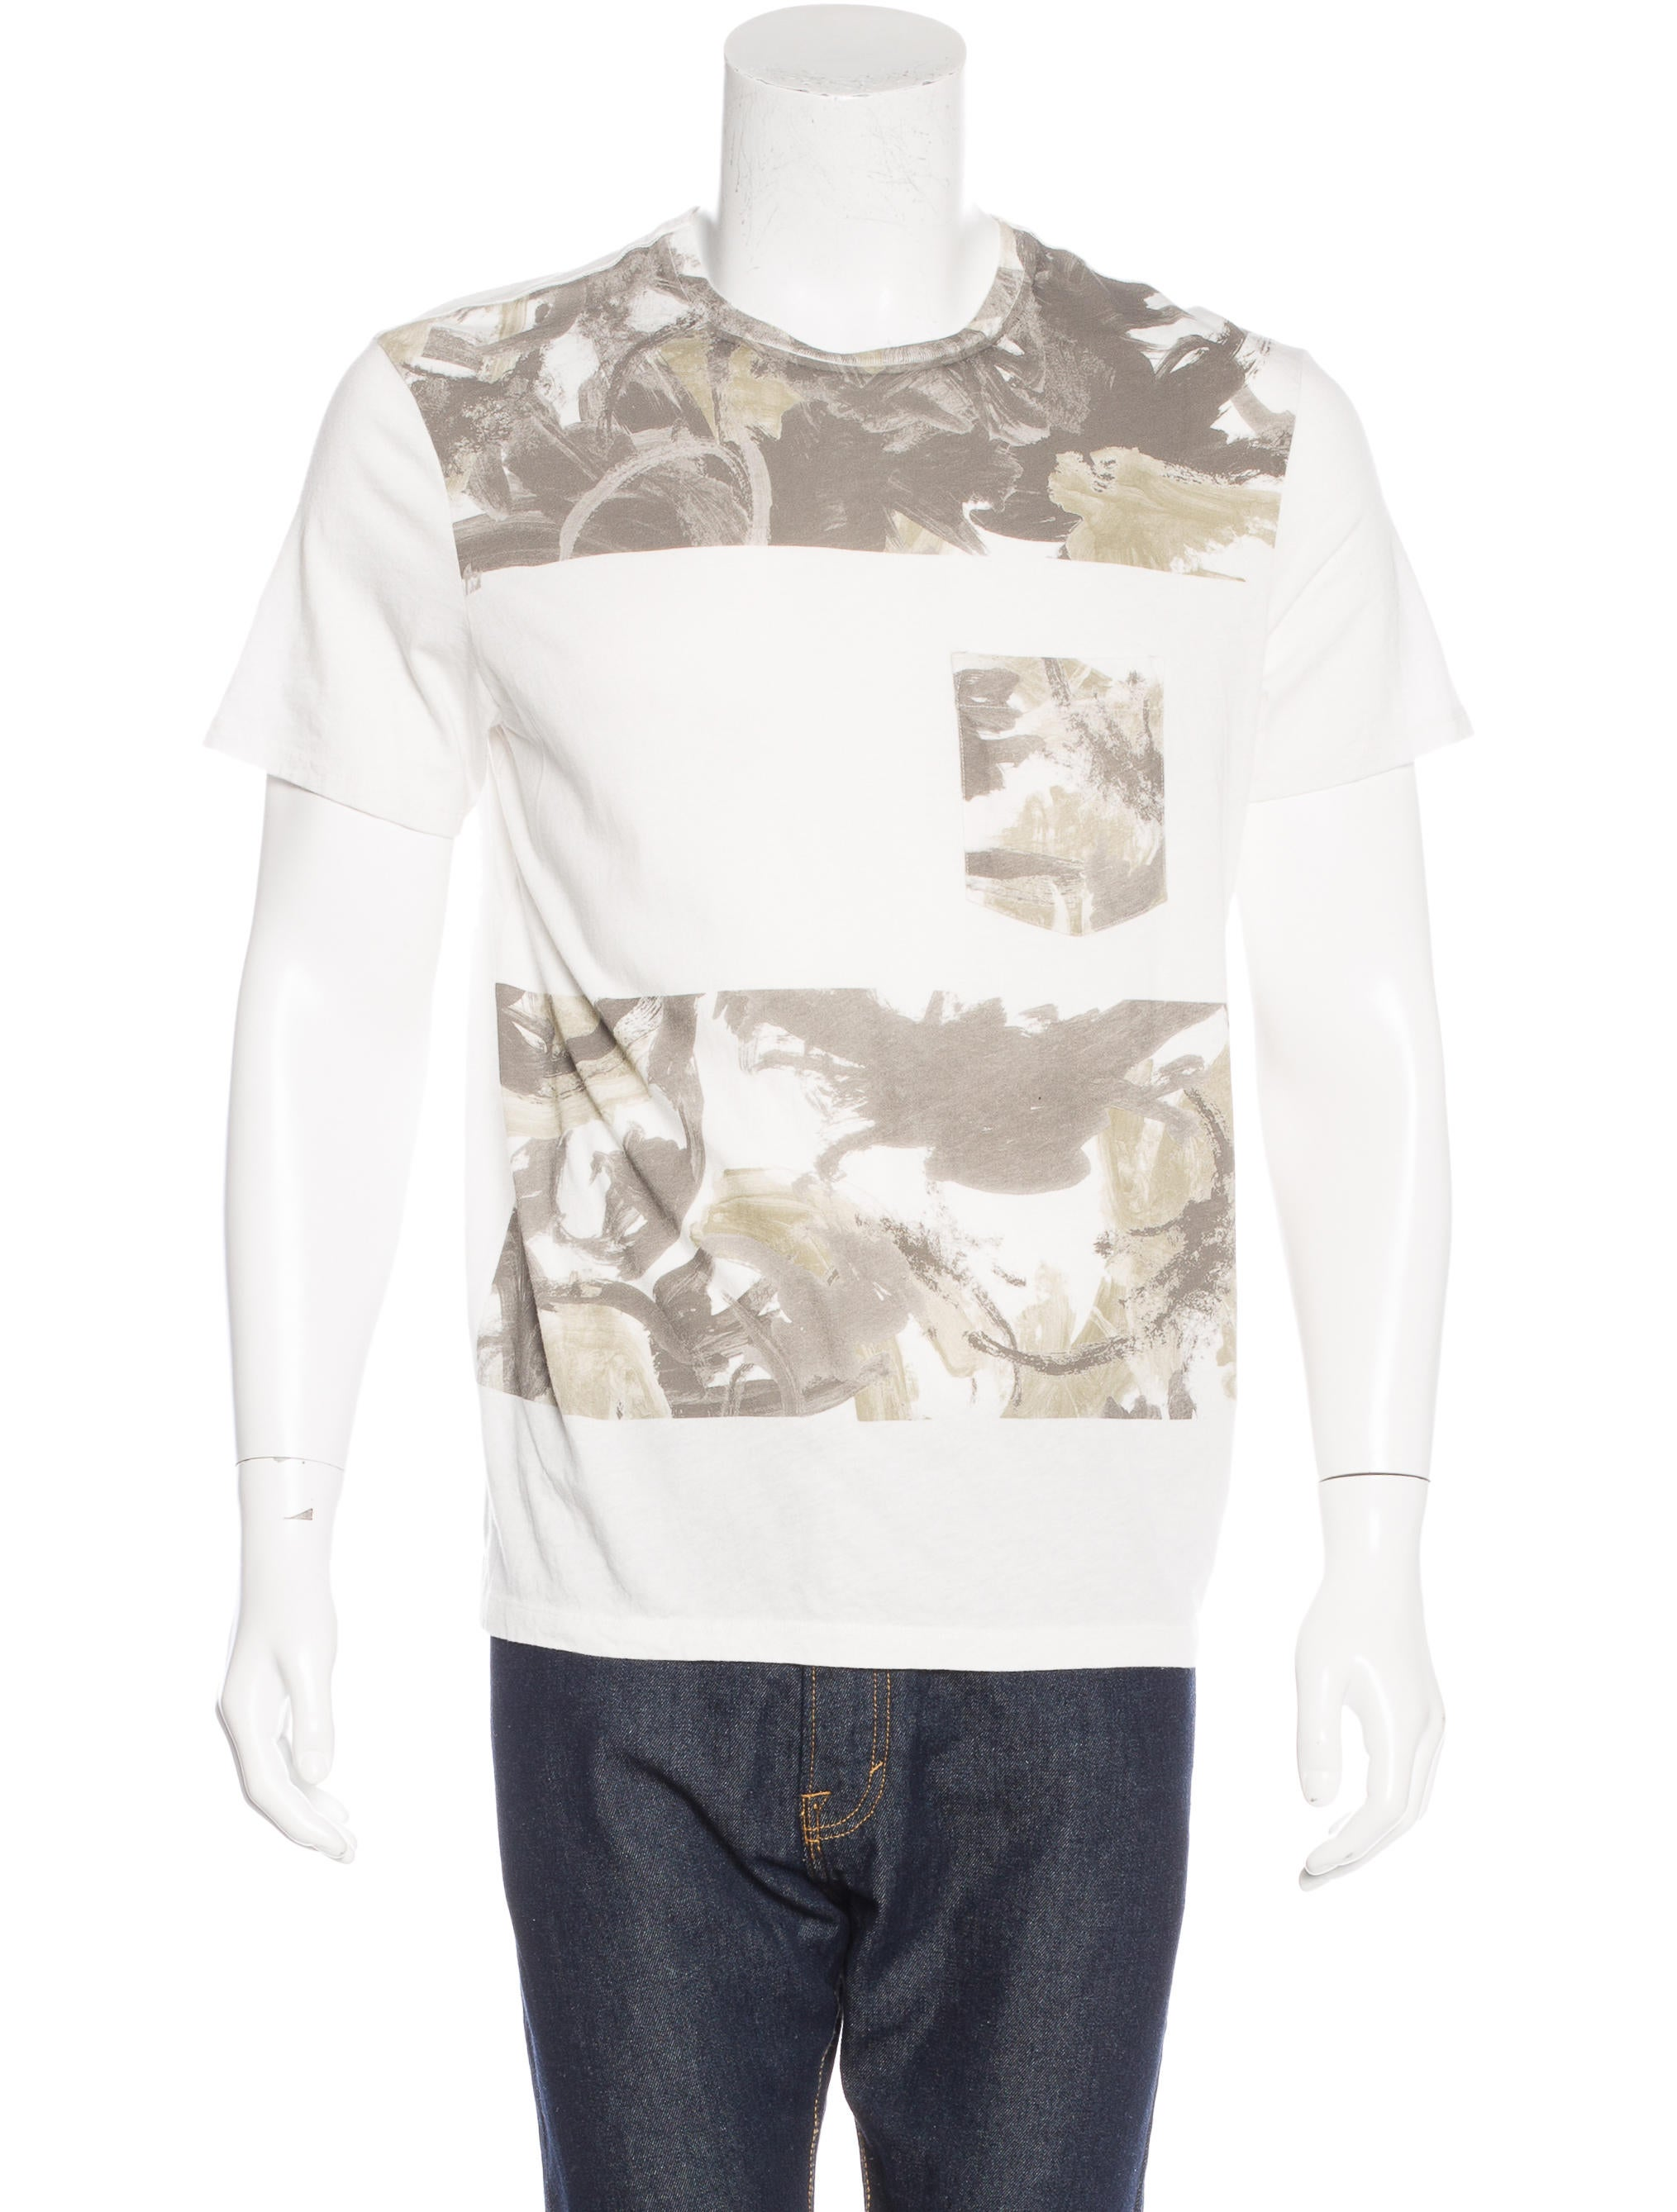 Allsaints printed patch pocket t shirt clothing for Pocket t shirt printing